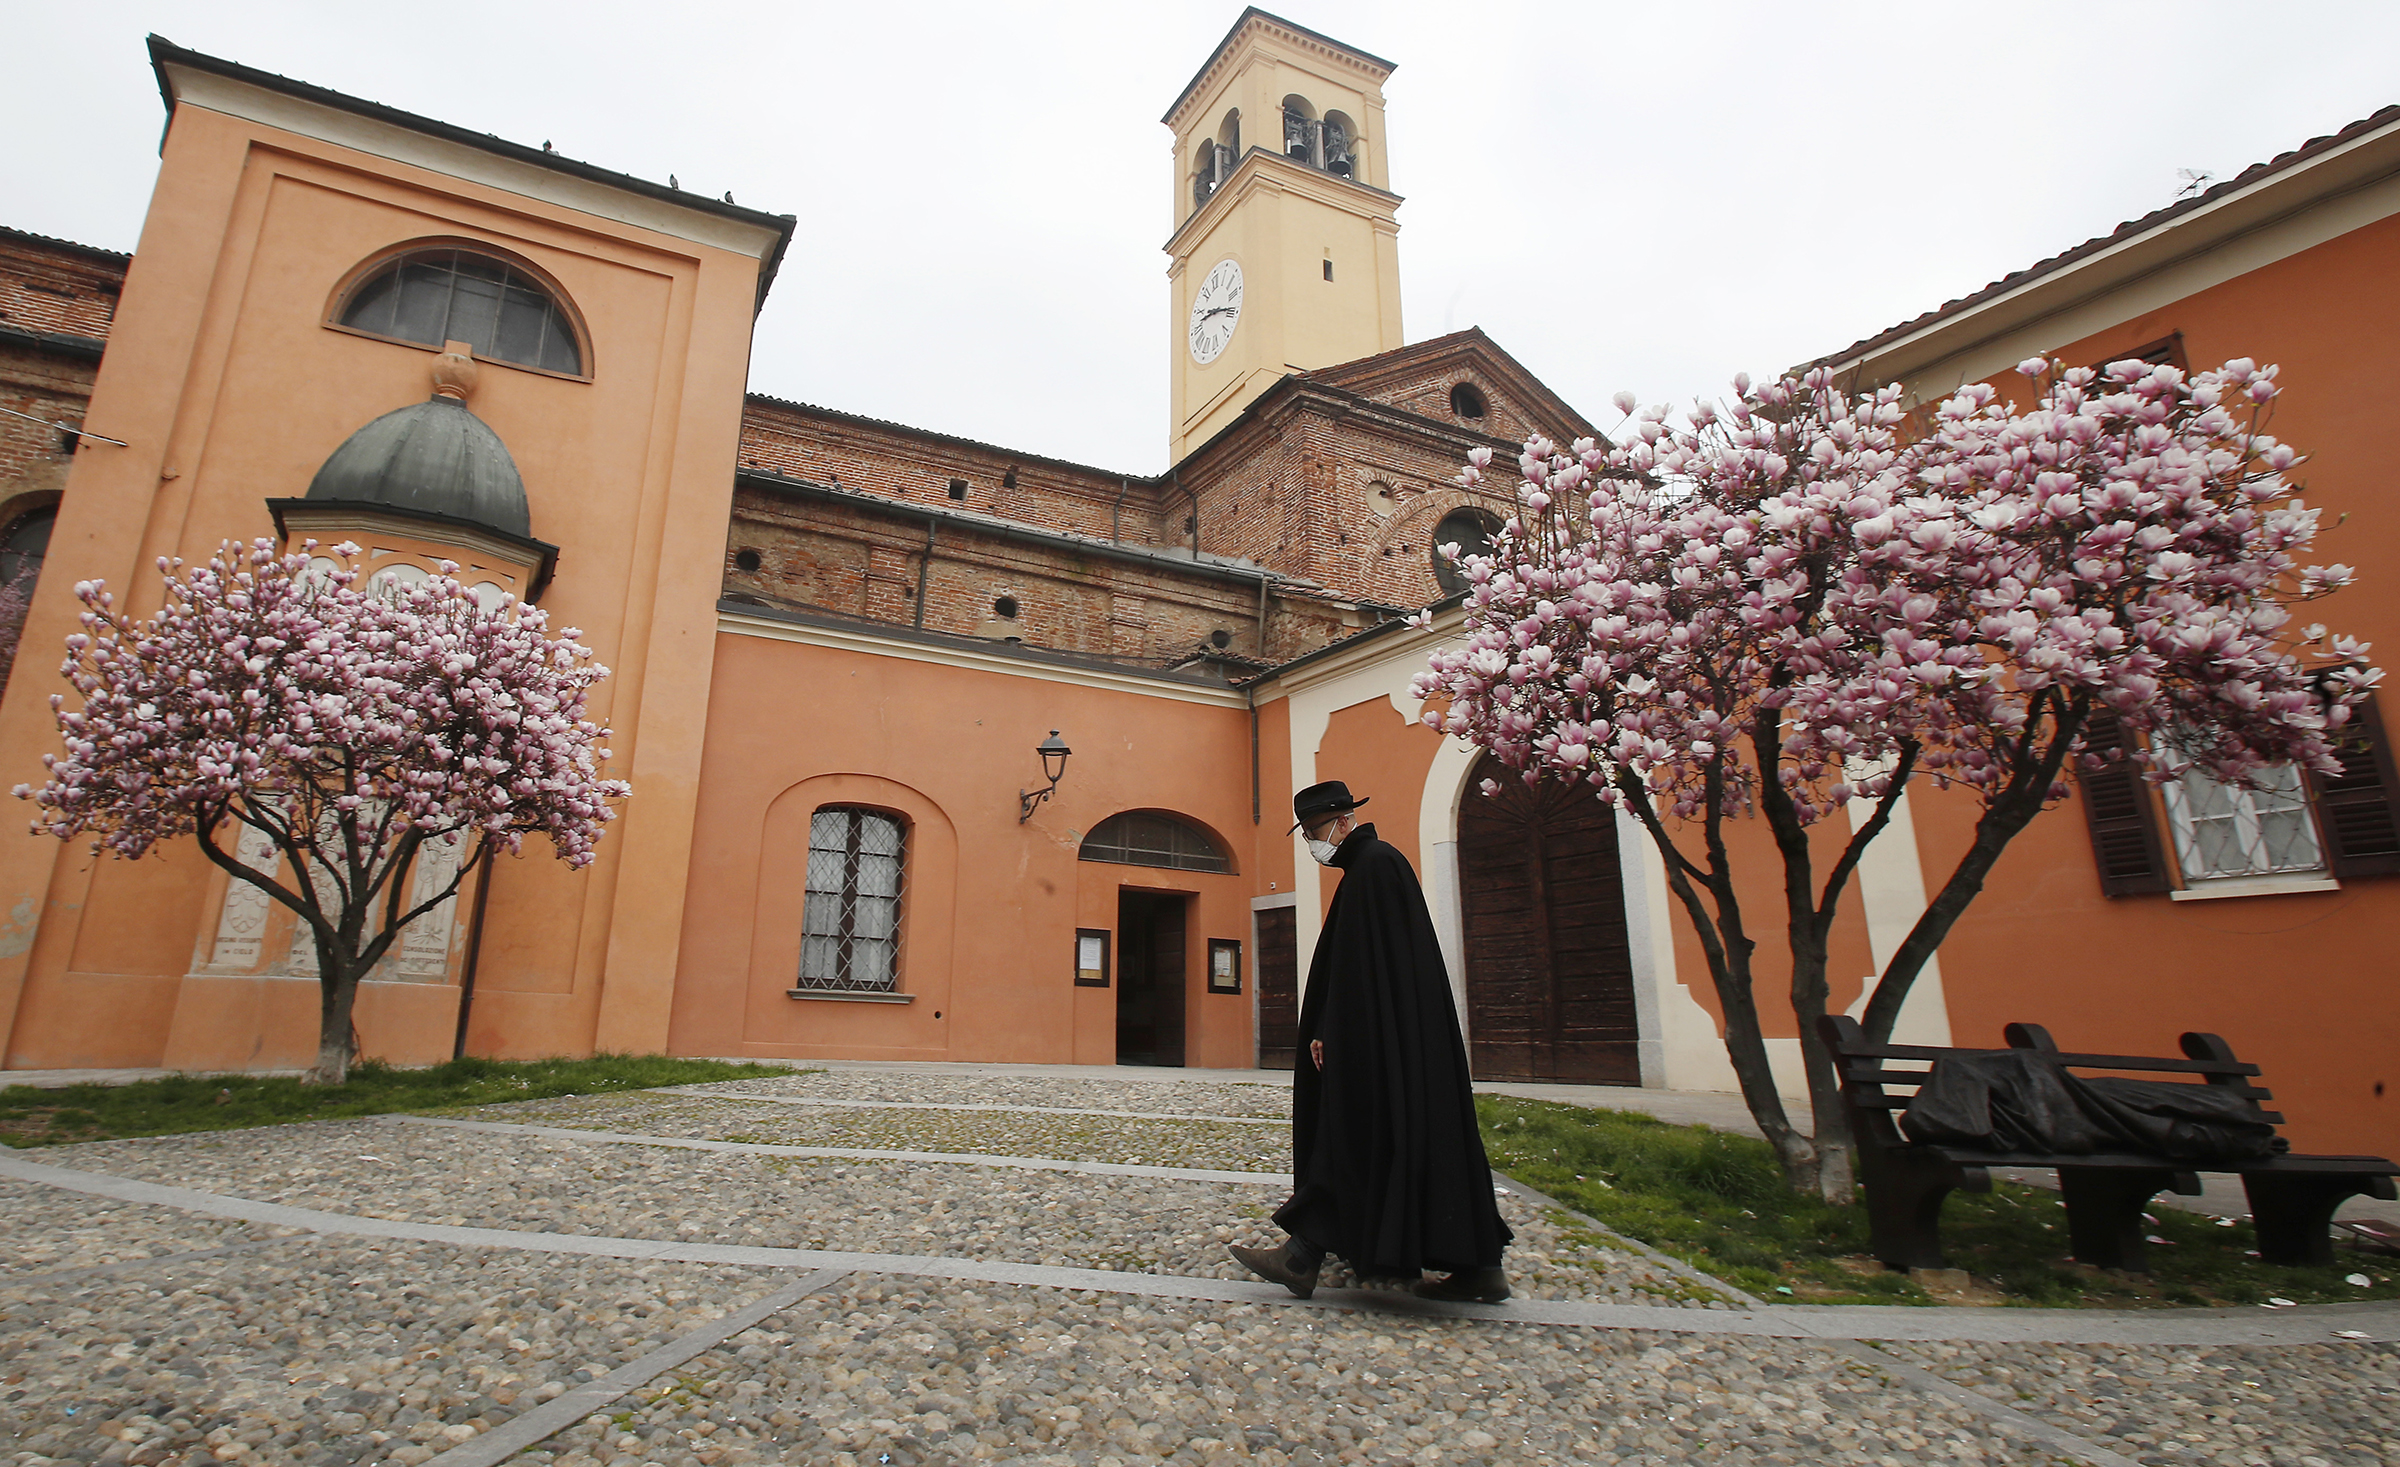 A priest walks in Codogno, Italy, on March 12, 2020.